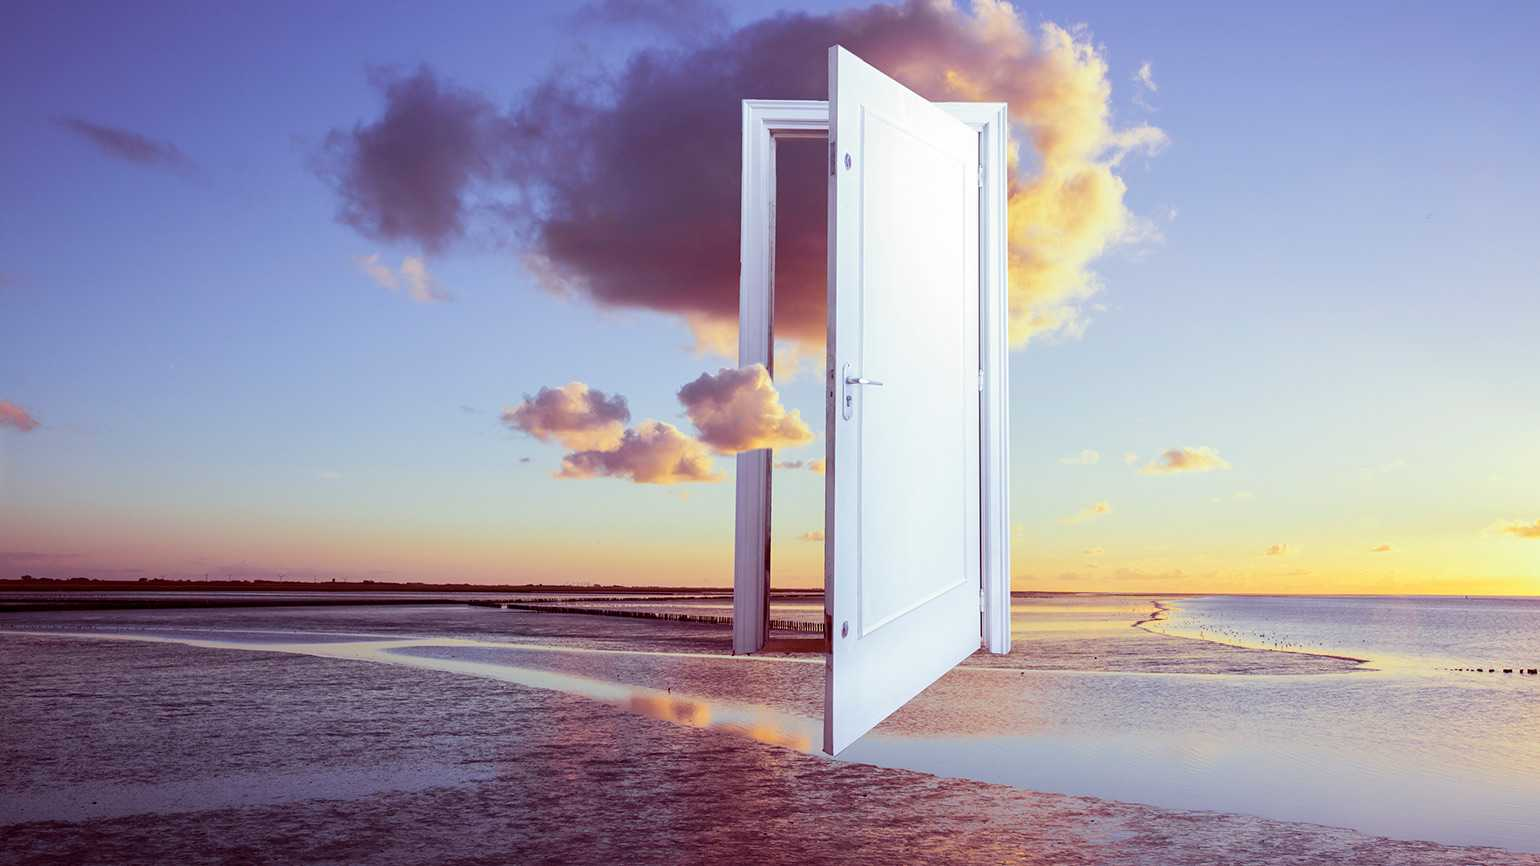 Dream imagery depicting a floating door that is wide open